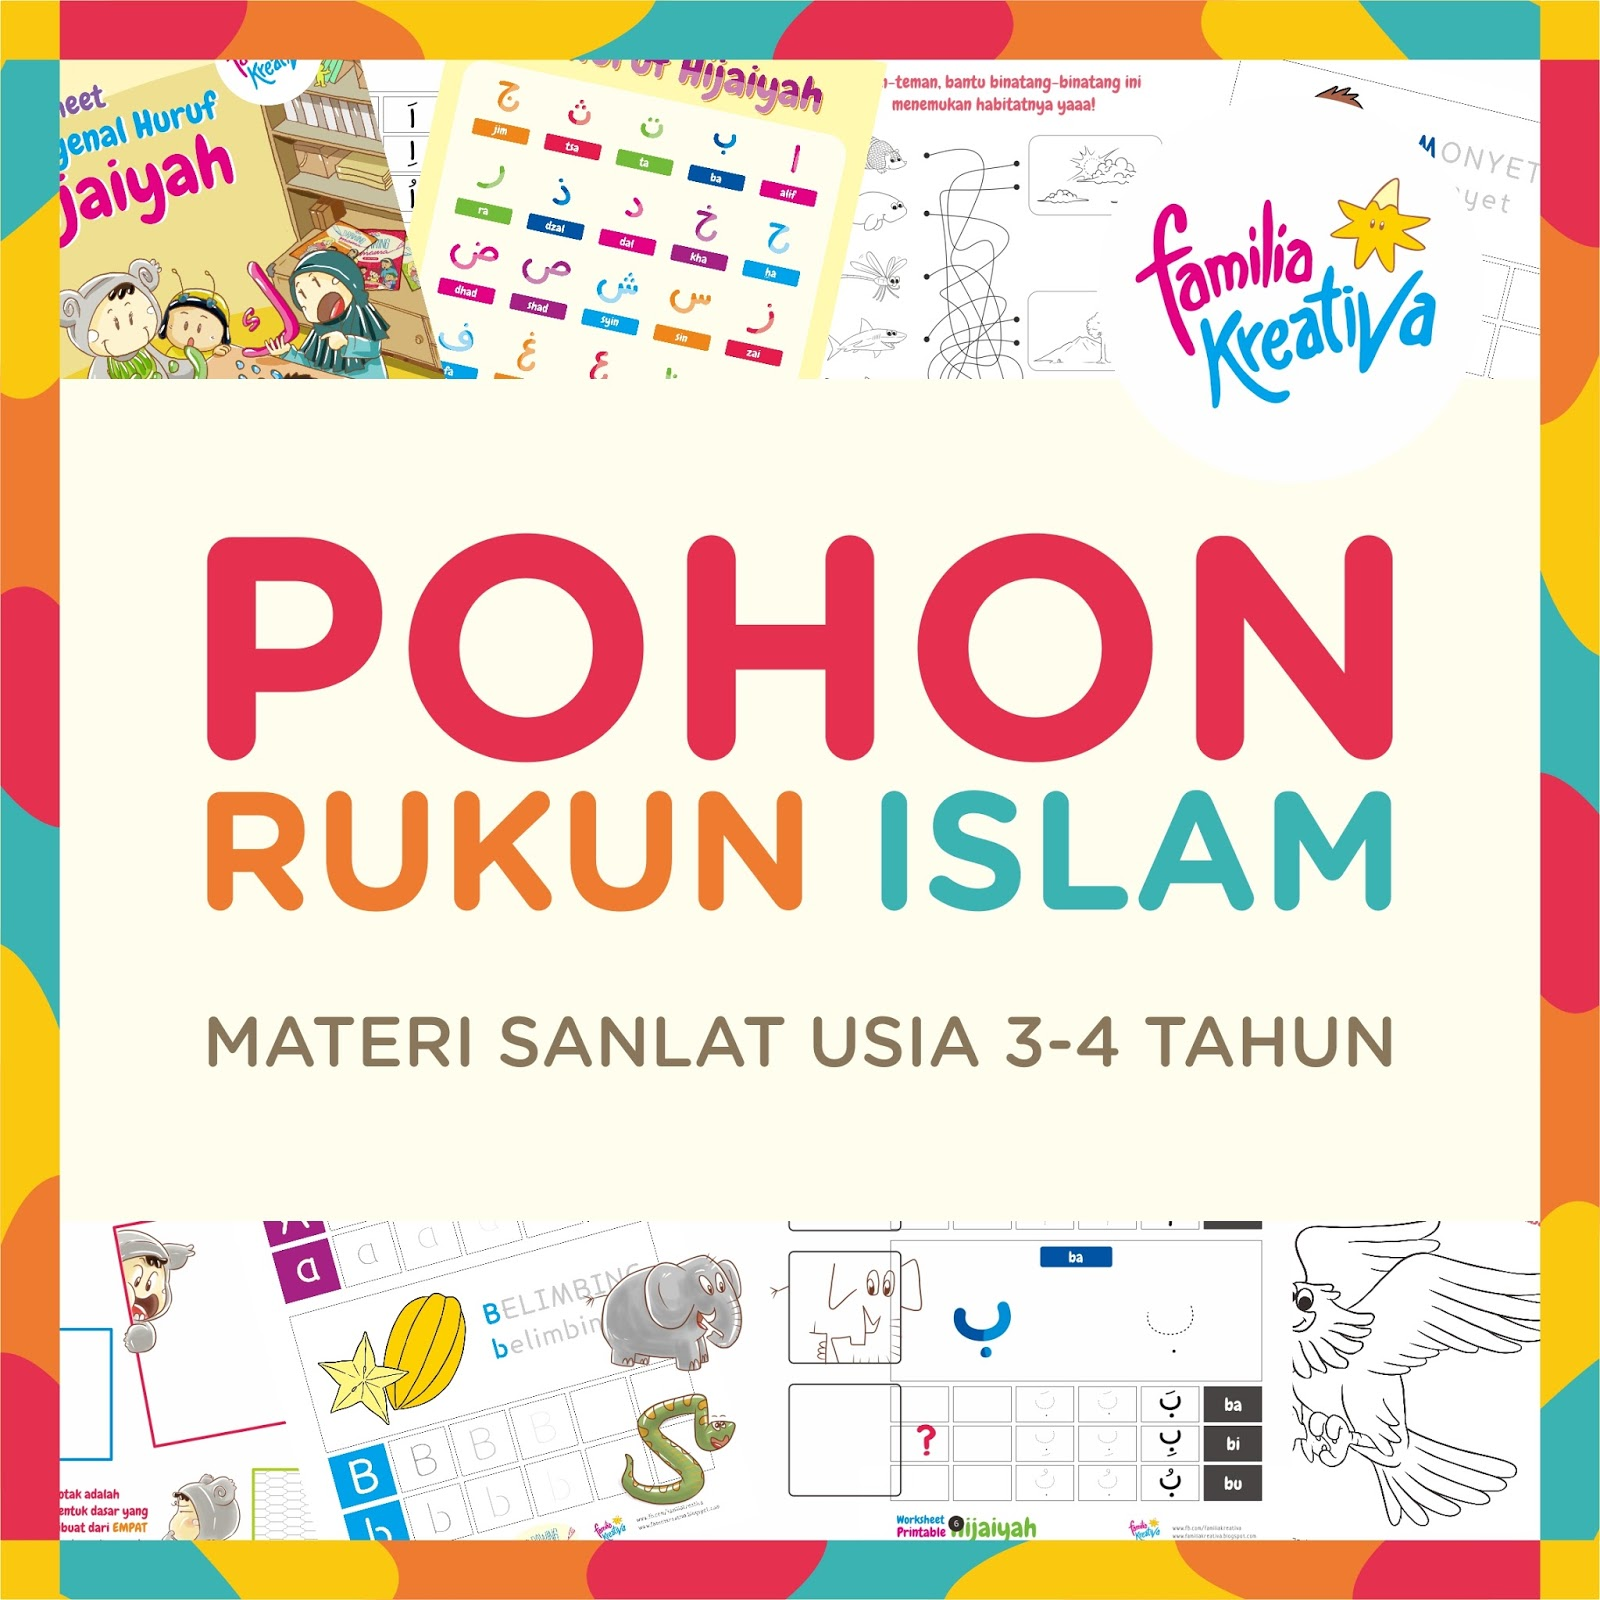 Worksheets Worksheet-anak-2-tahun printable untuk anak 2 tahun at party ideas and tutorials theme 91 with tahun